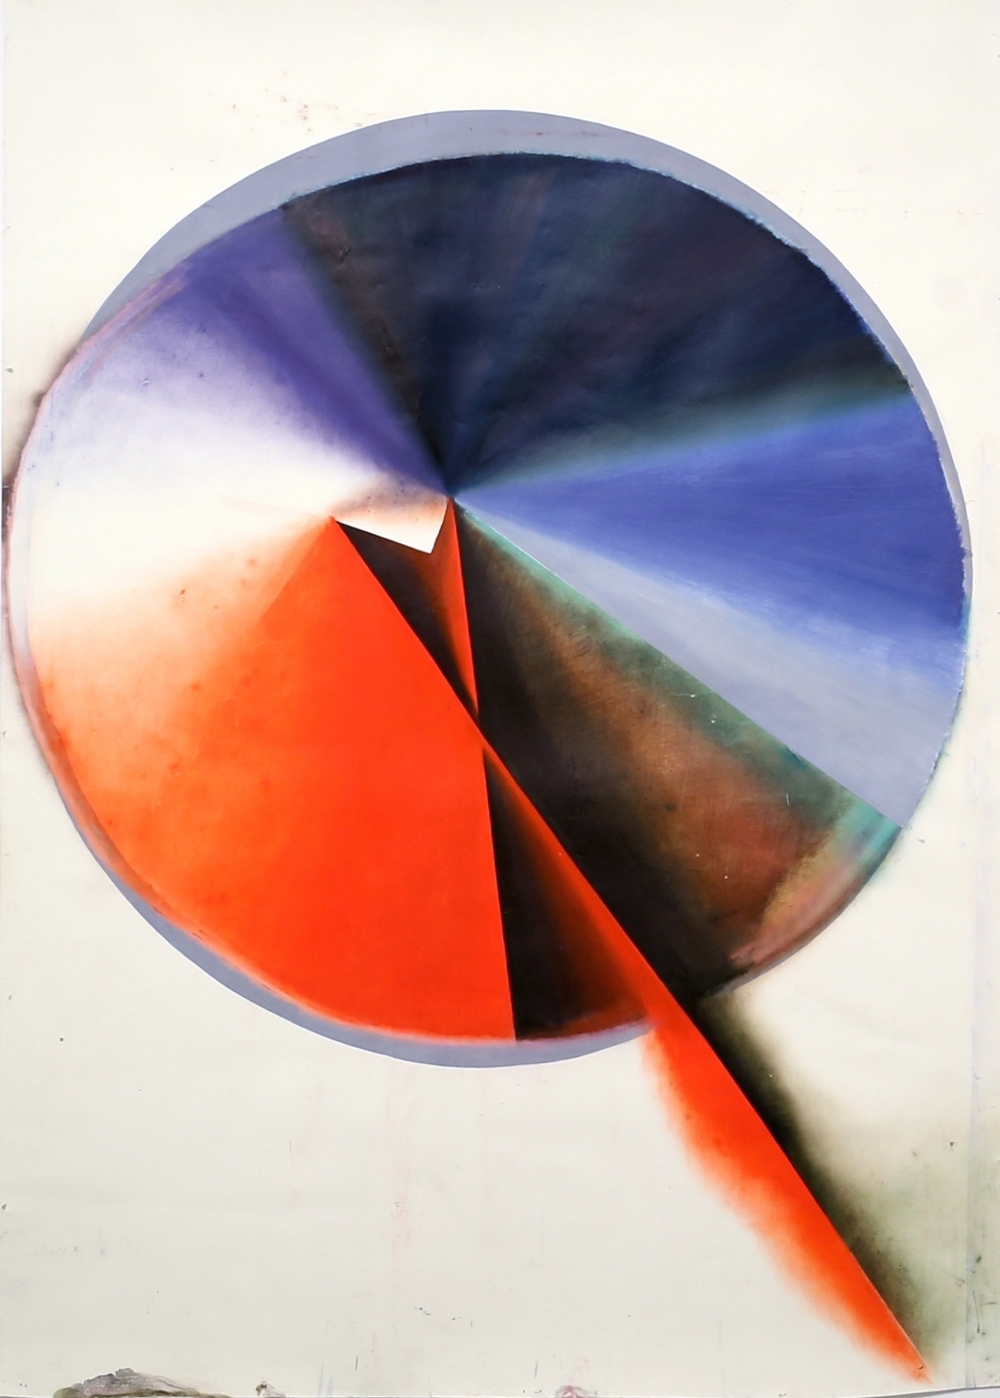 KERSTIN BRATSCH  MACHINE OF LIGHT, 2009  OIL ON PAPER  103 x 72 IN  262 x 183 CM  NFS